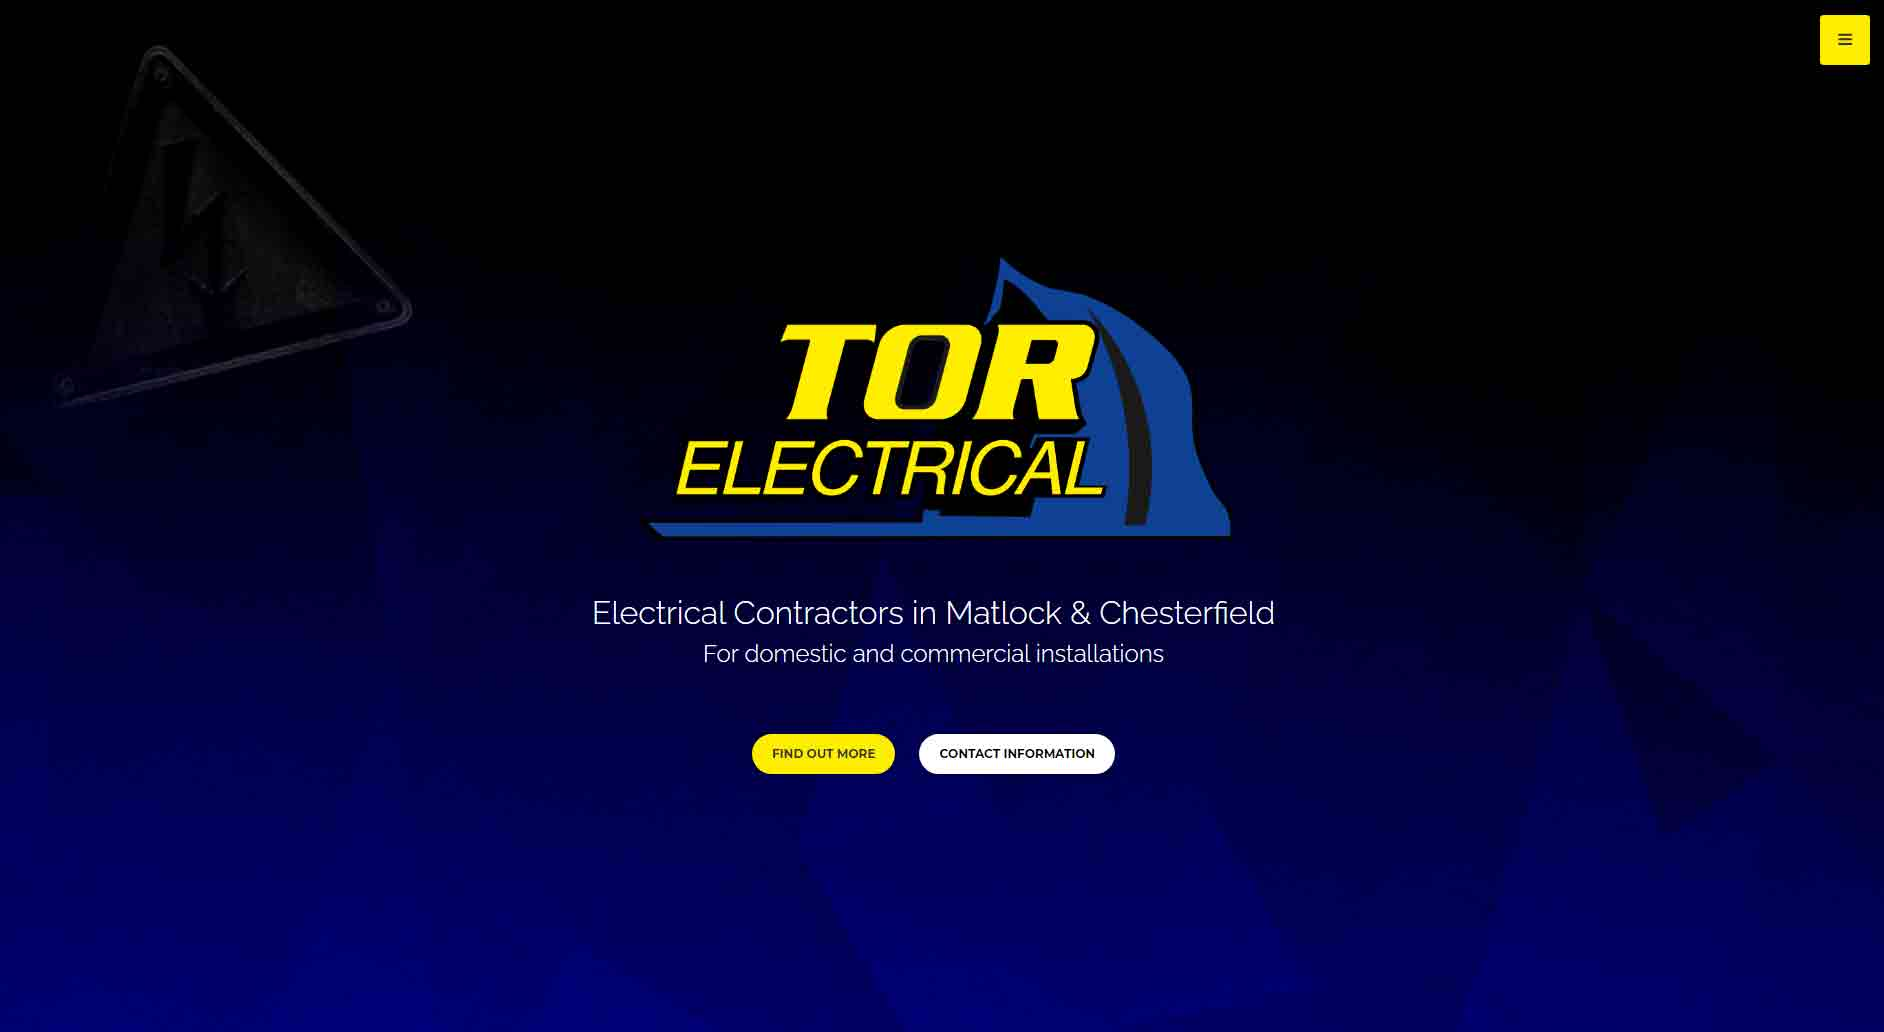 Tor Electrical by Cecil Web Designs